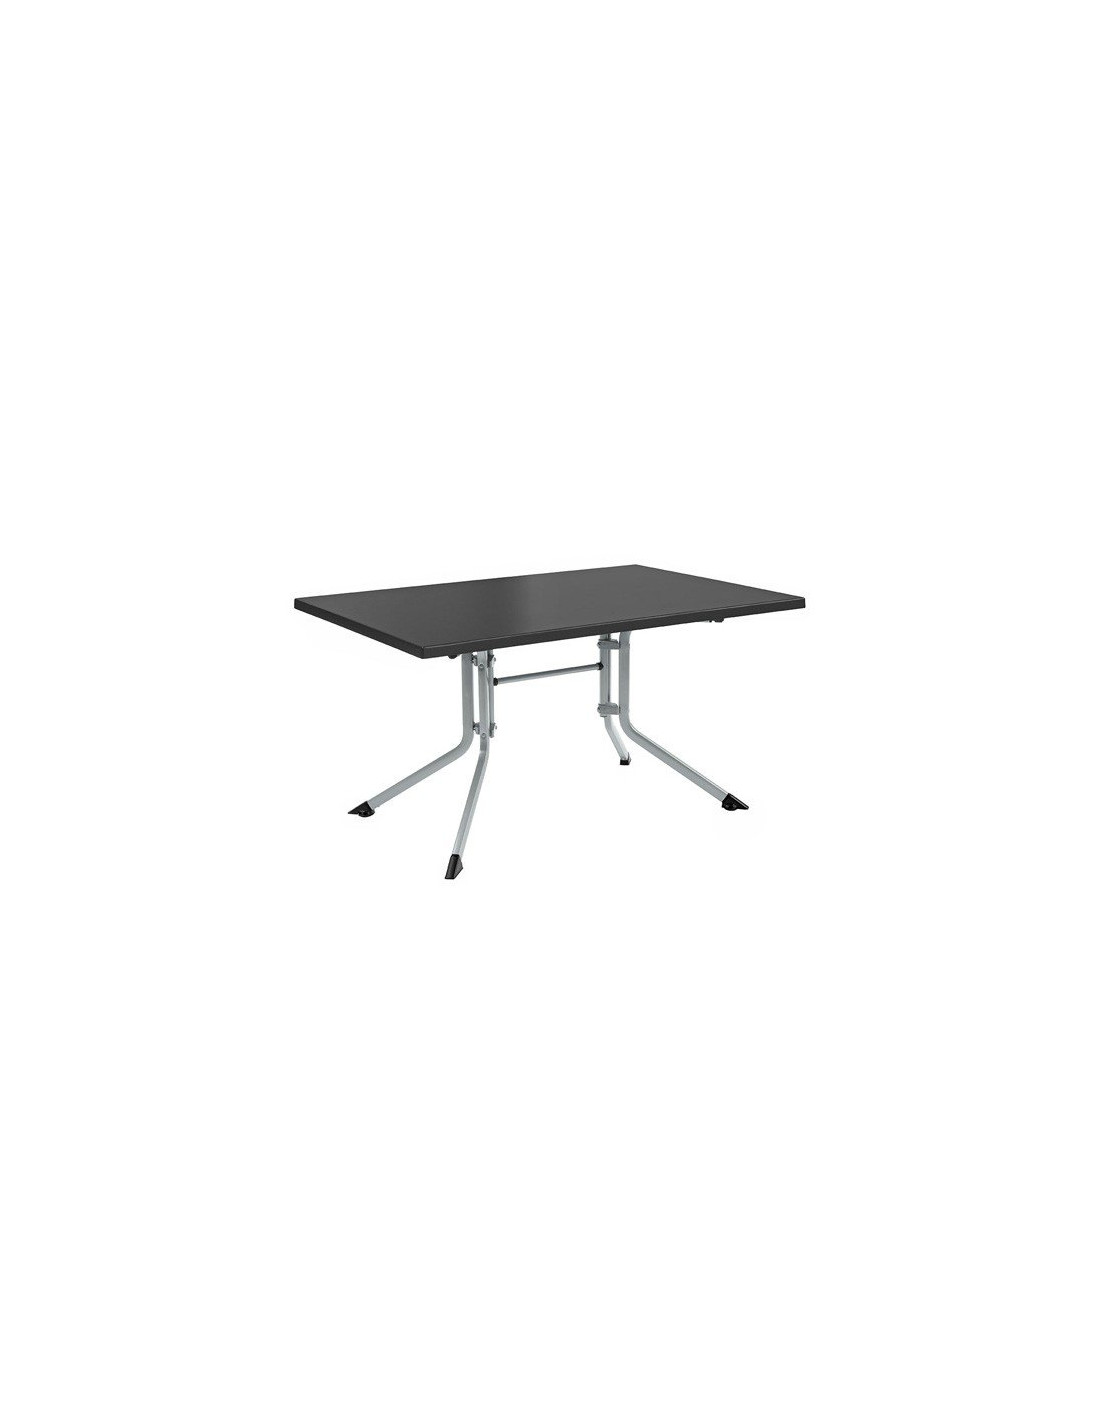 Table pliante de jardin ADVANTAGE carrée aluminium